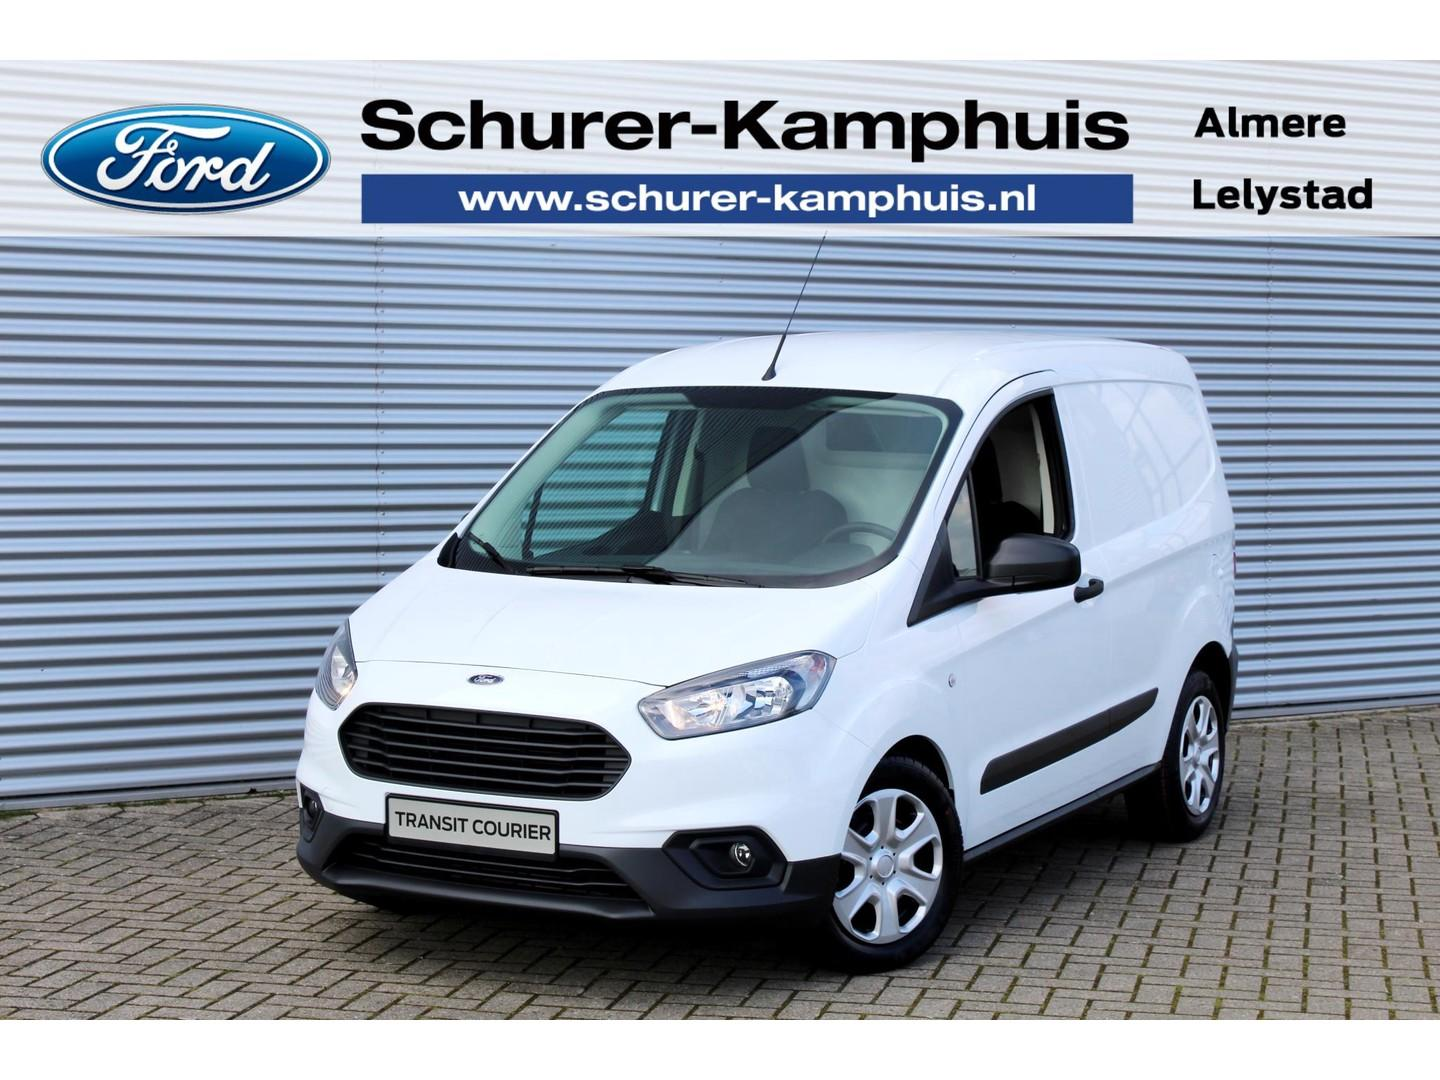 Ford Transit courier 1.5 tdci trend start&stop